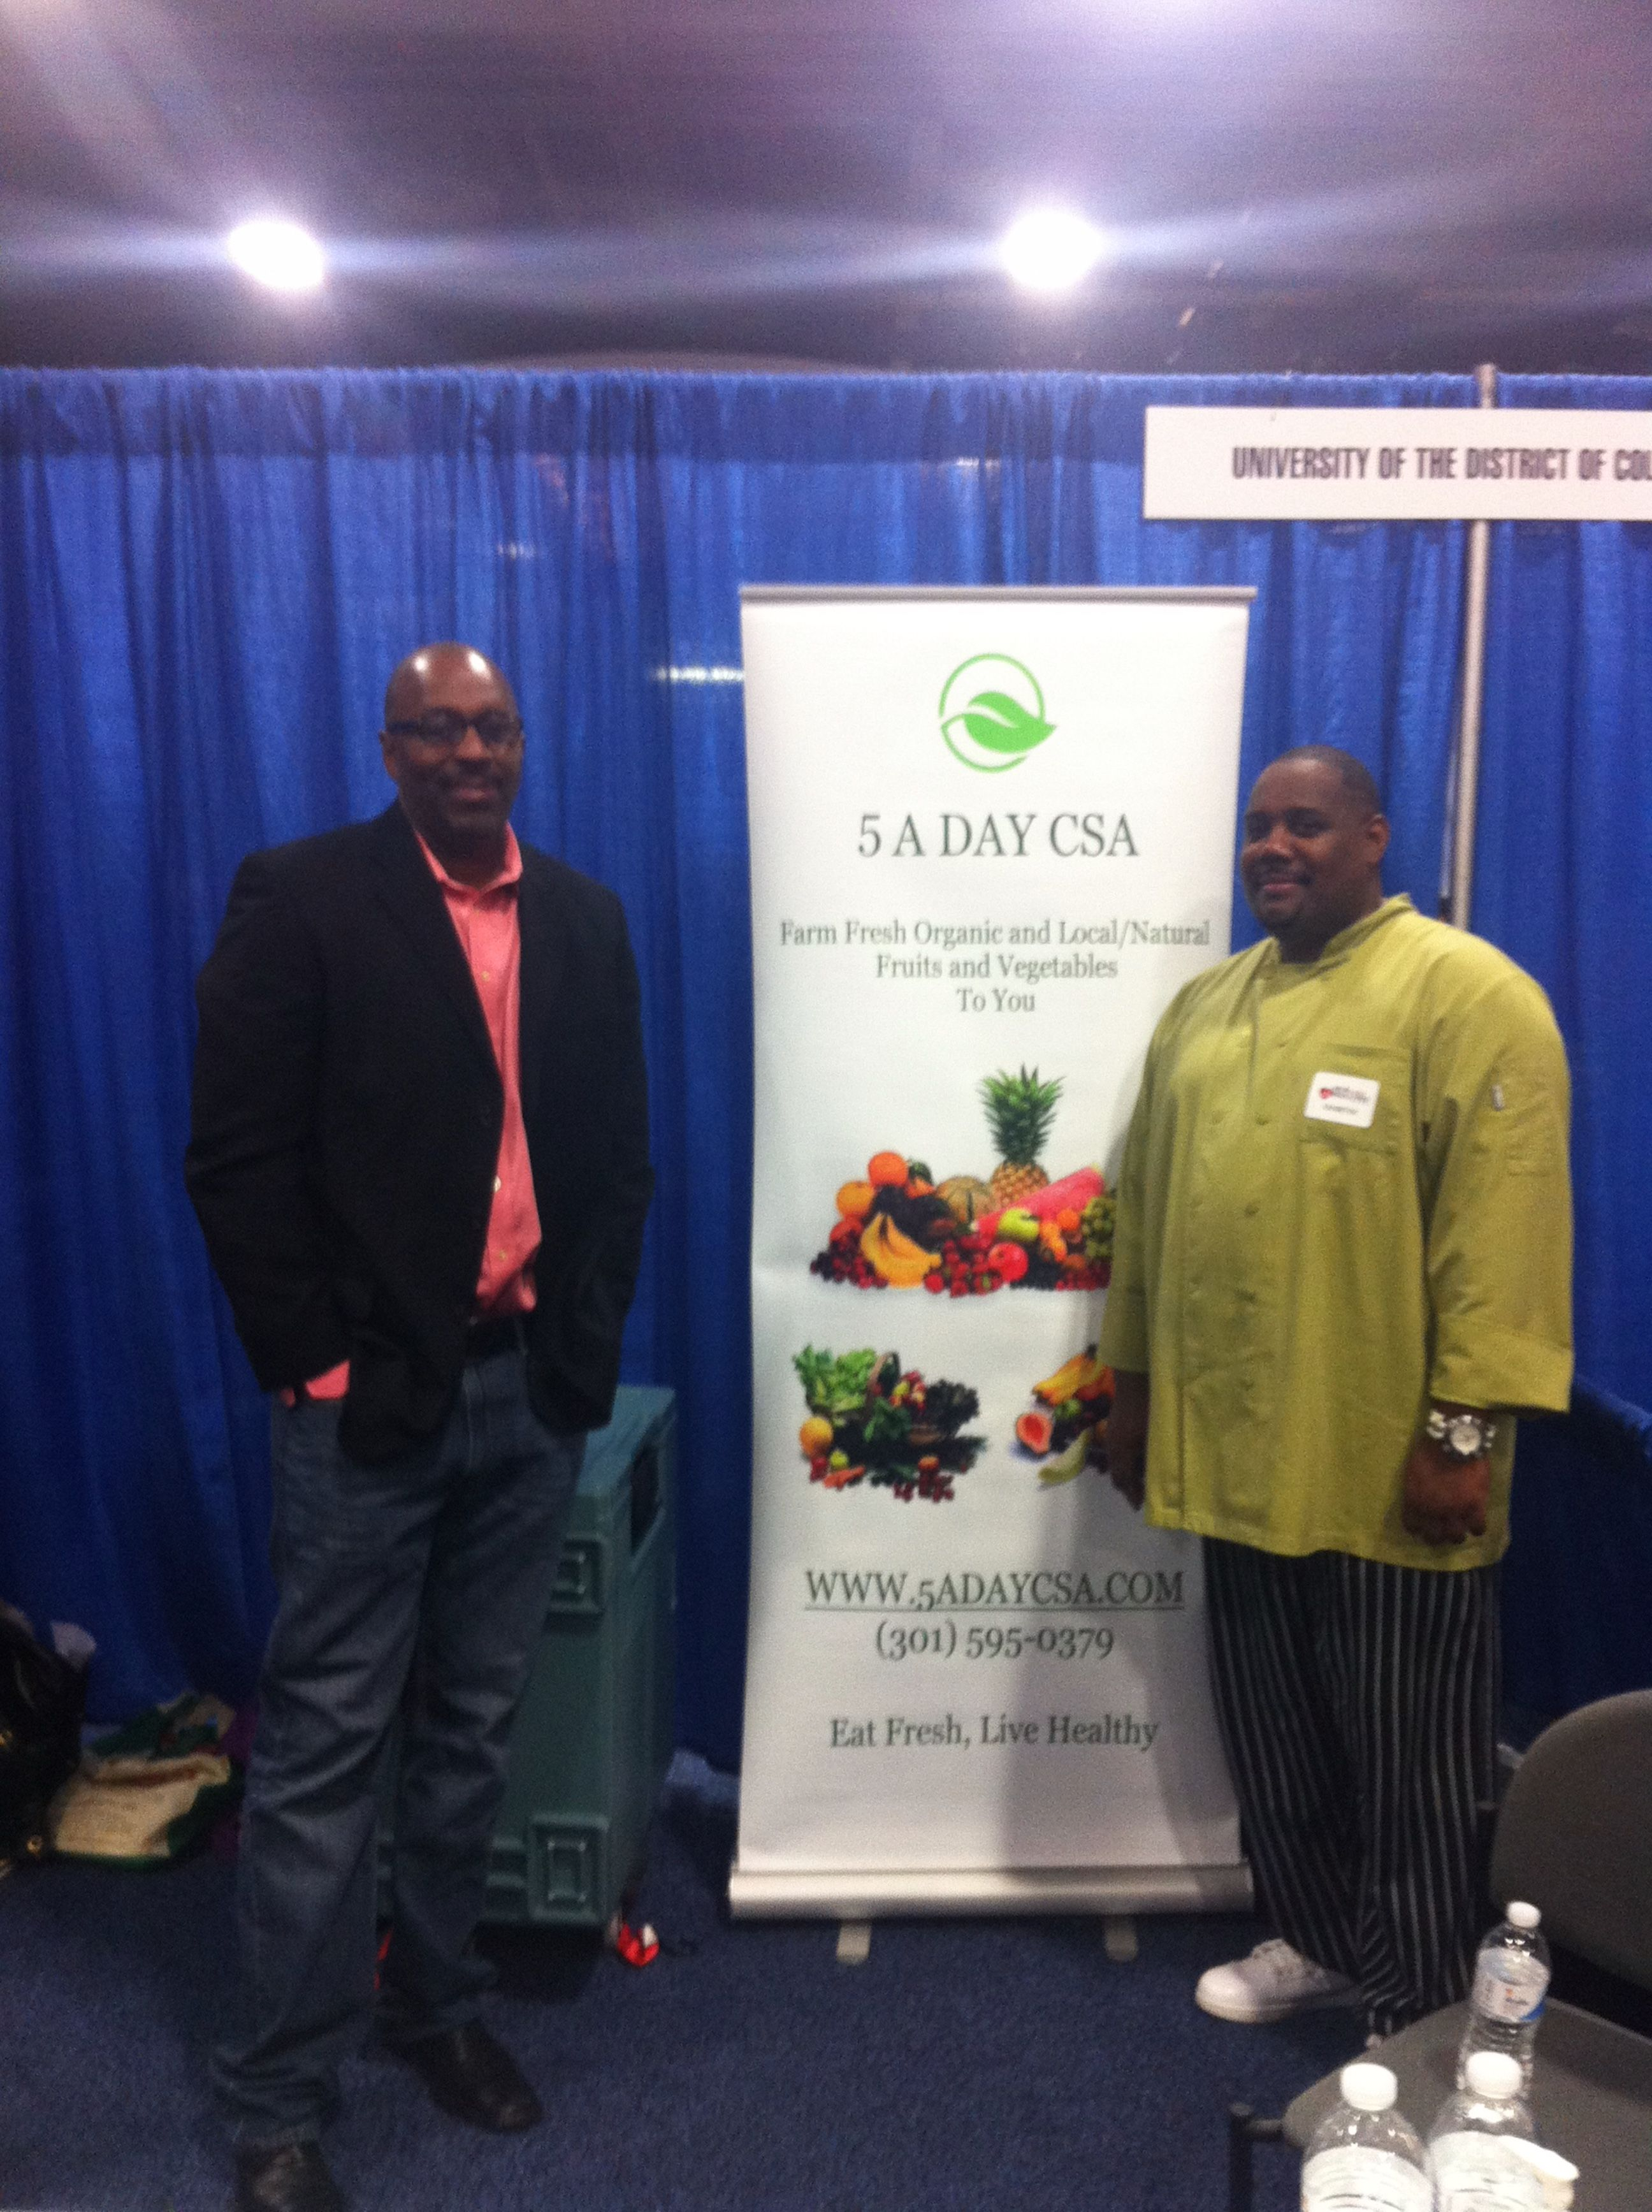 Chef herb and udc staff at the nbc wellness expo csa